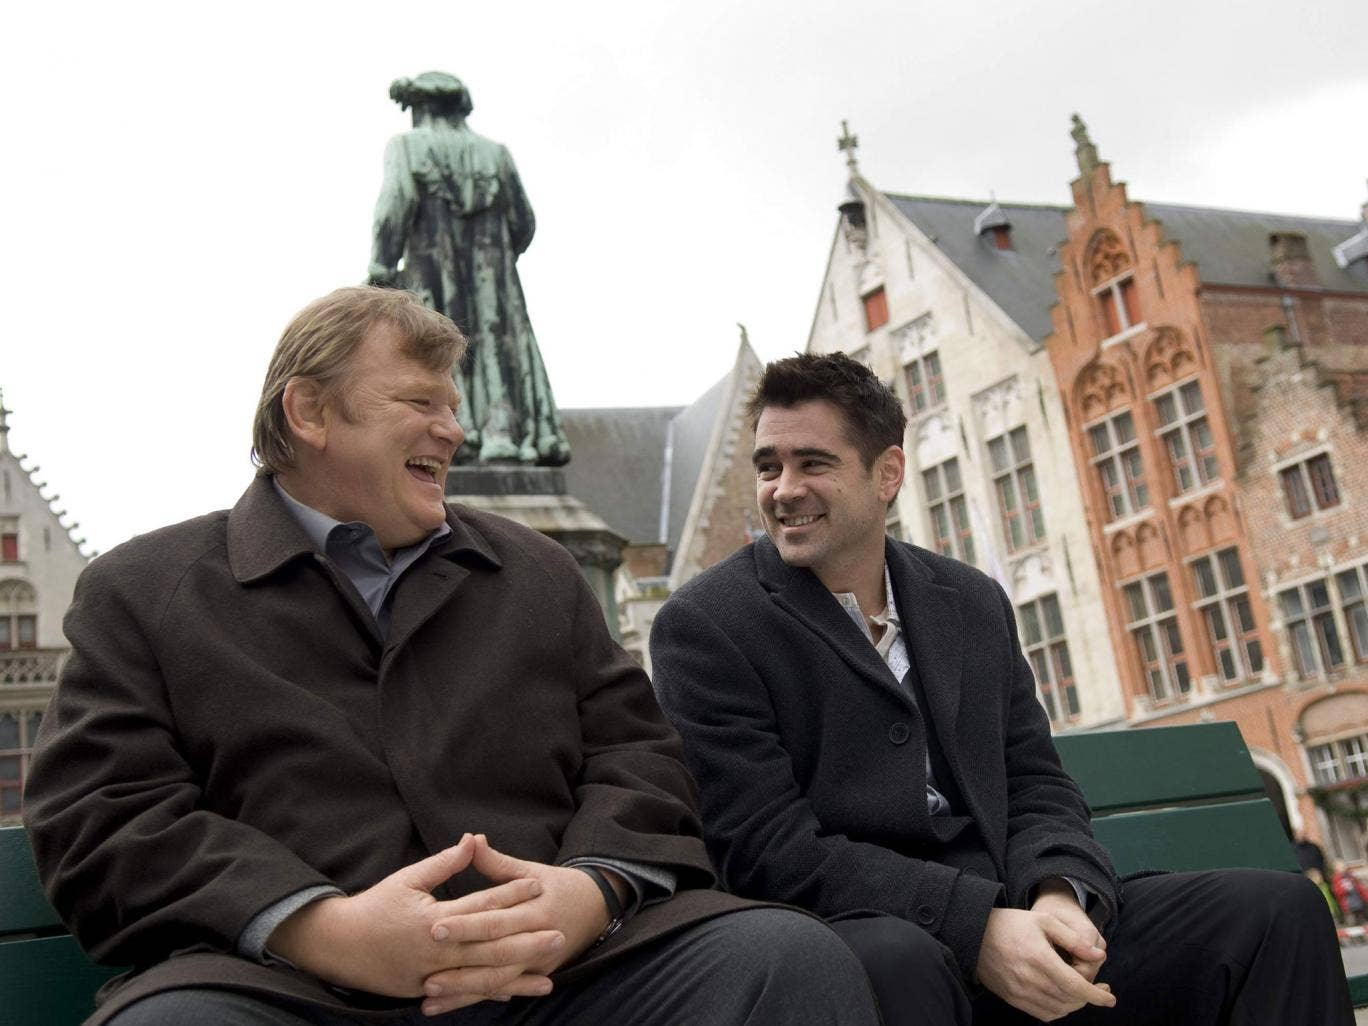 Brendan Gleeson, left, as Ken and Colin Farrell, right, as Ray in 'In Bruges'